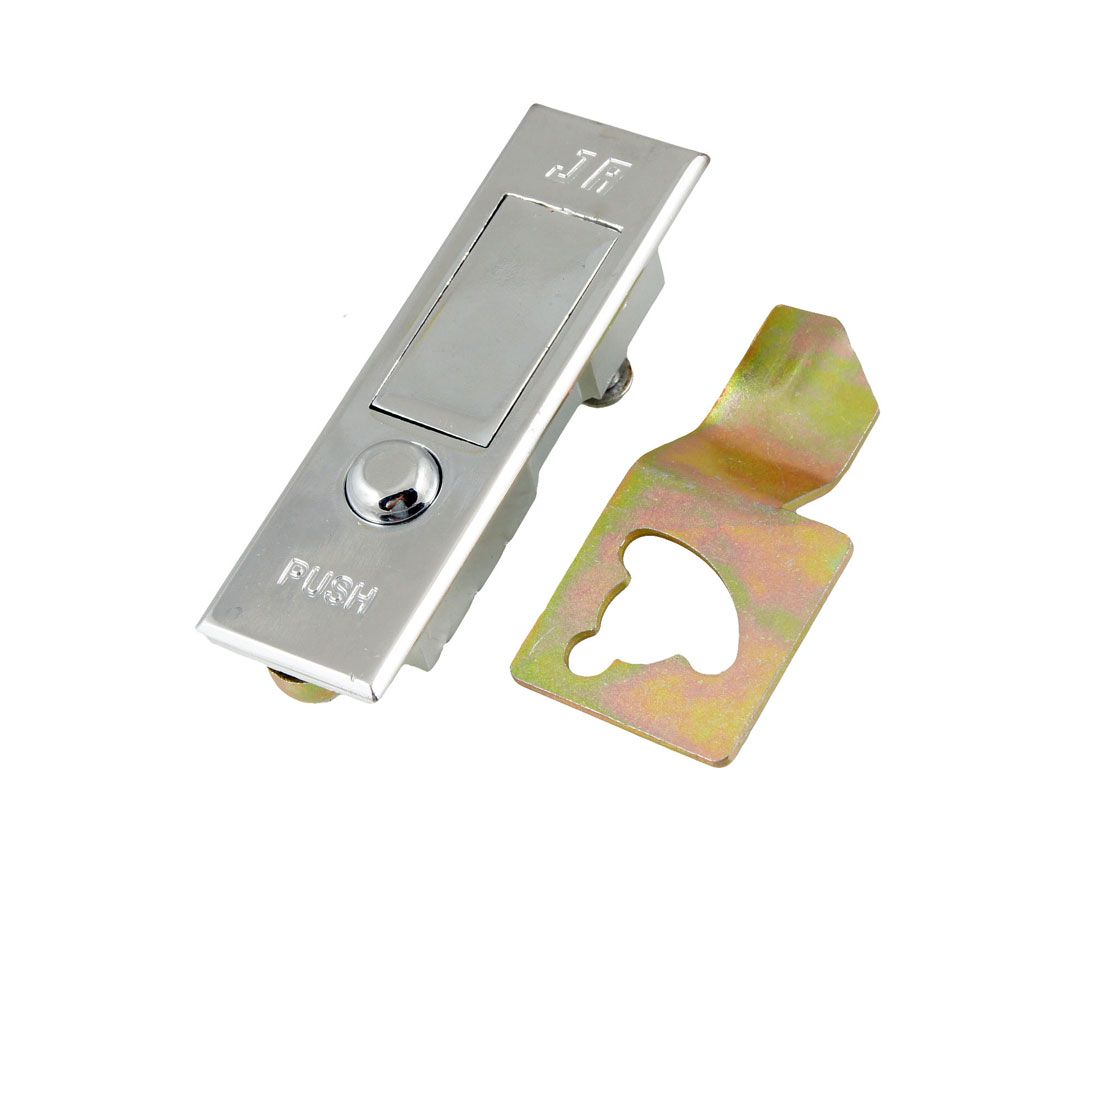 "Rectangular 3.5"" Long Metal Plane Type Push Button Cabinet Lock"